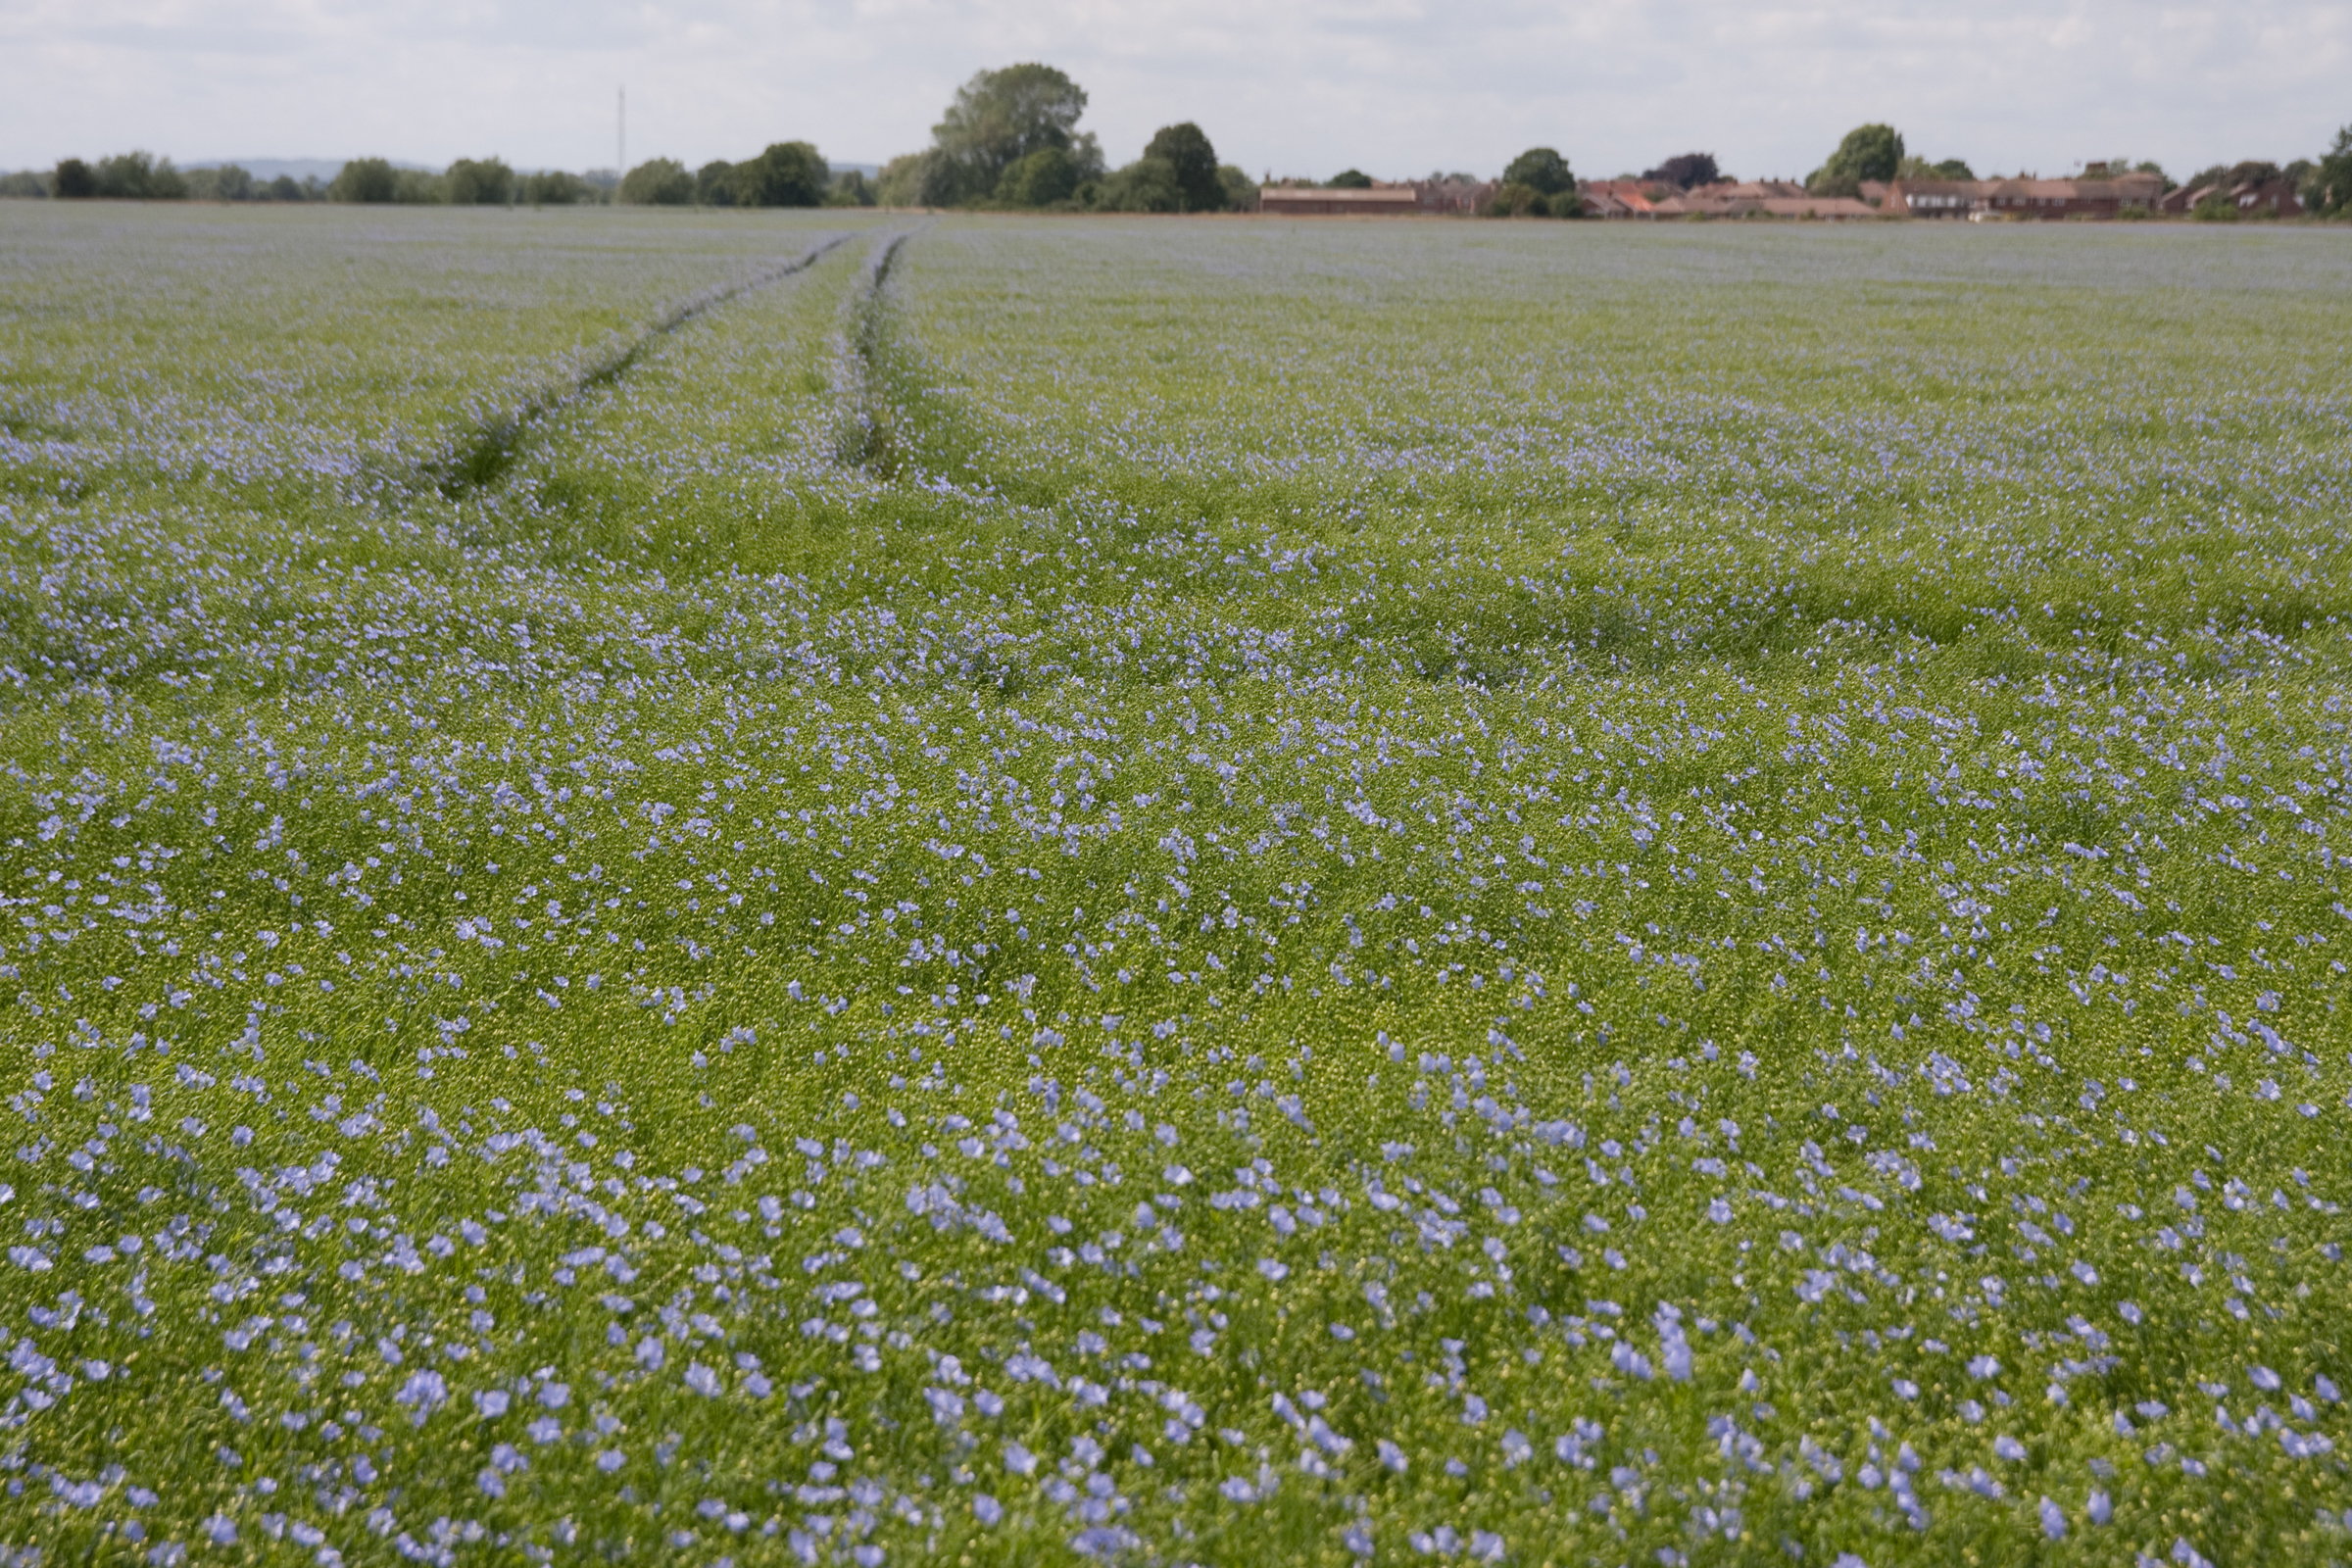 FIELD OF FLAX, by Peter Tidey